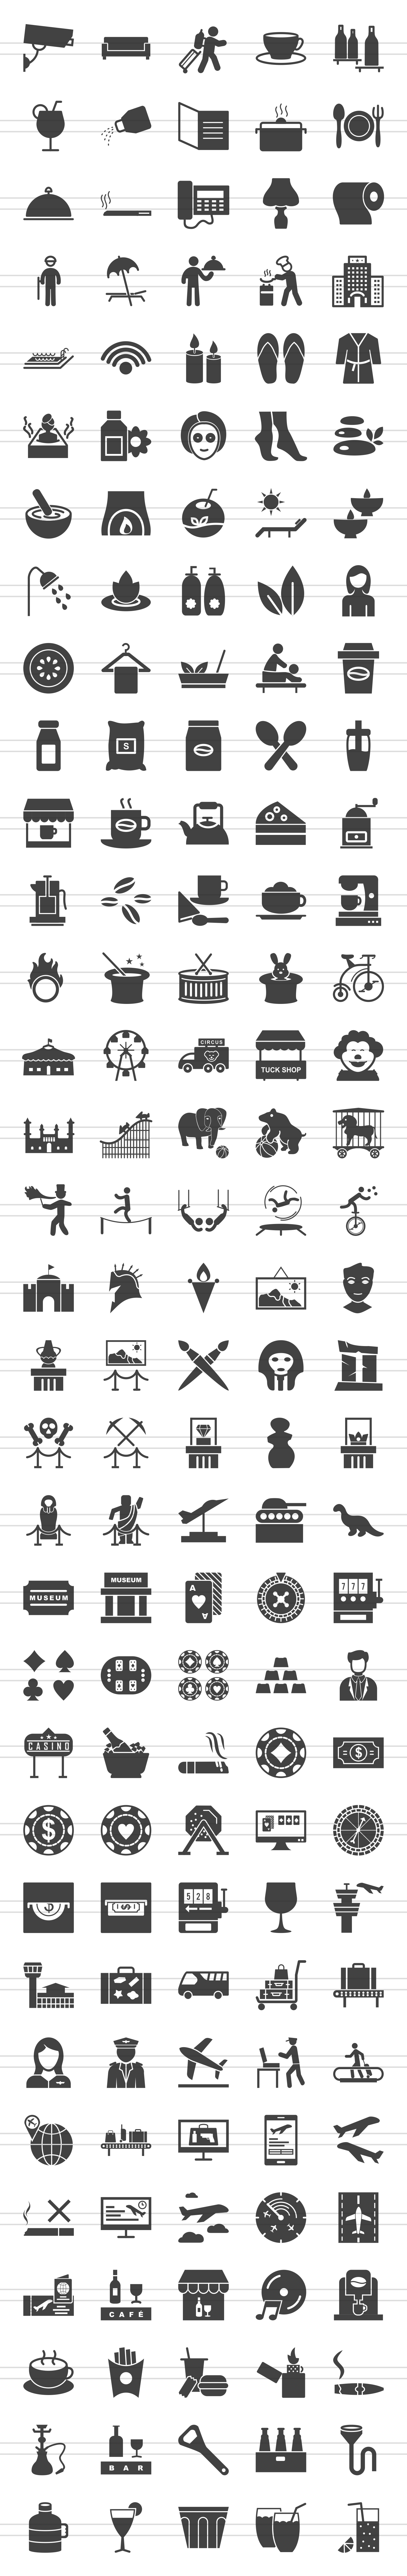 166 Places Glyph Icons example image 3